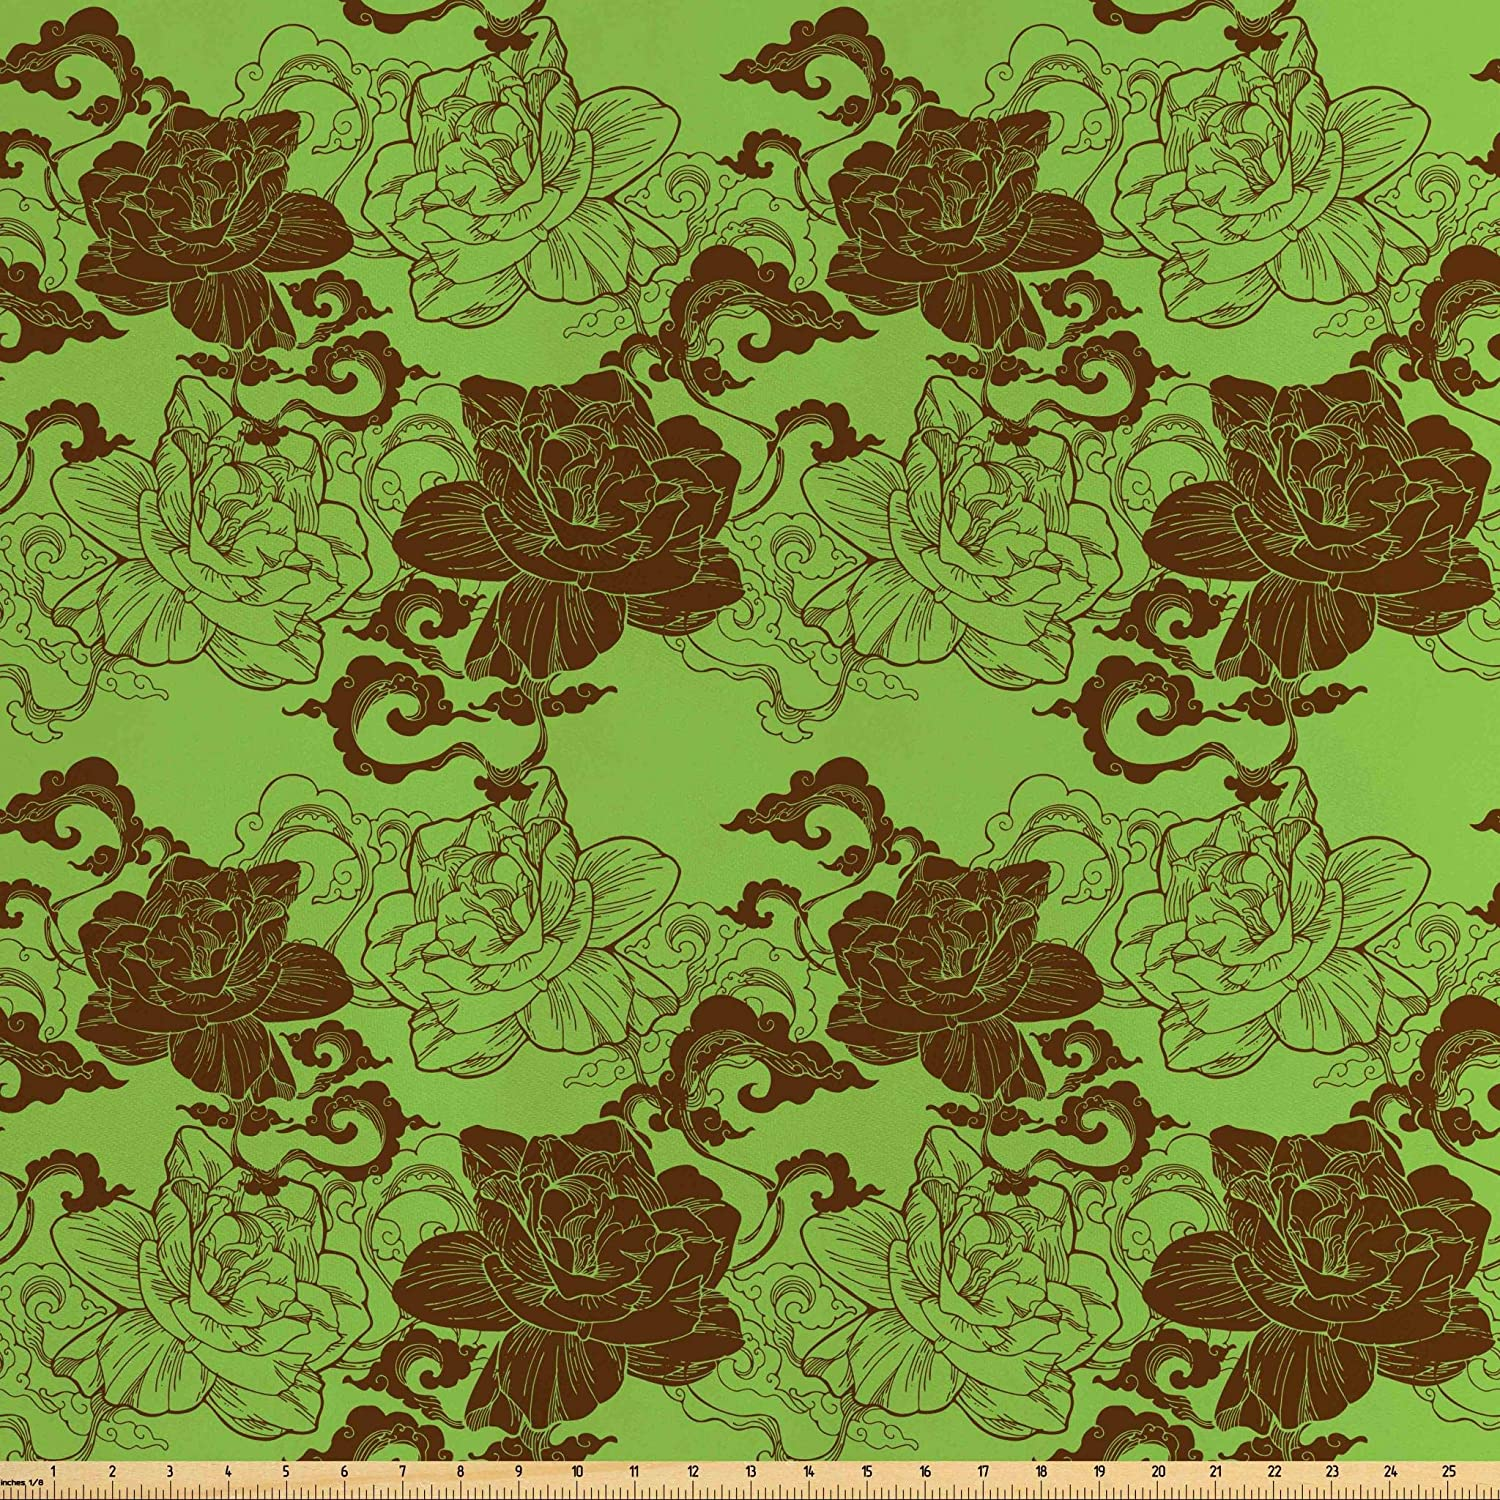 Lunarable Green Oriental Fabric by The Yard, Botanical Chinese Fantasy Design Curvy Lines Clouds Gardenia, Decorative Satin Fabric for Home Textiles and Crafts, 1 Yard, Apple Green and Chocolate